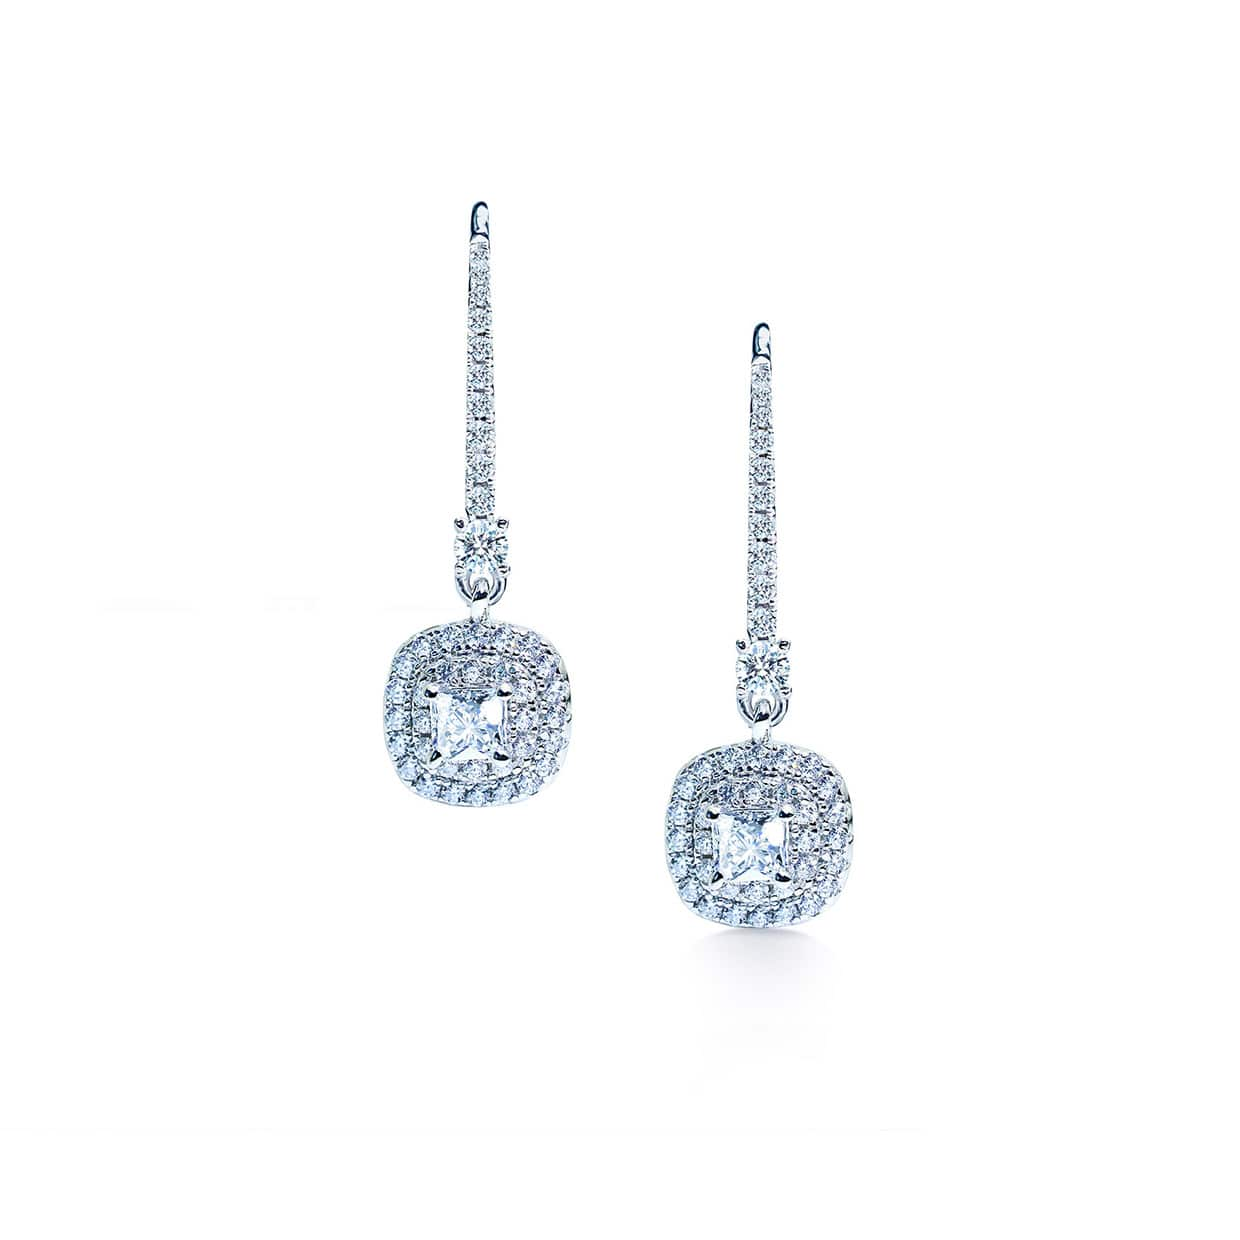 Oxford Double Halo Cushion Earrings - Abelstedt